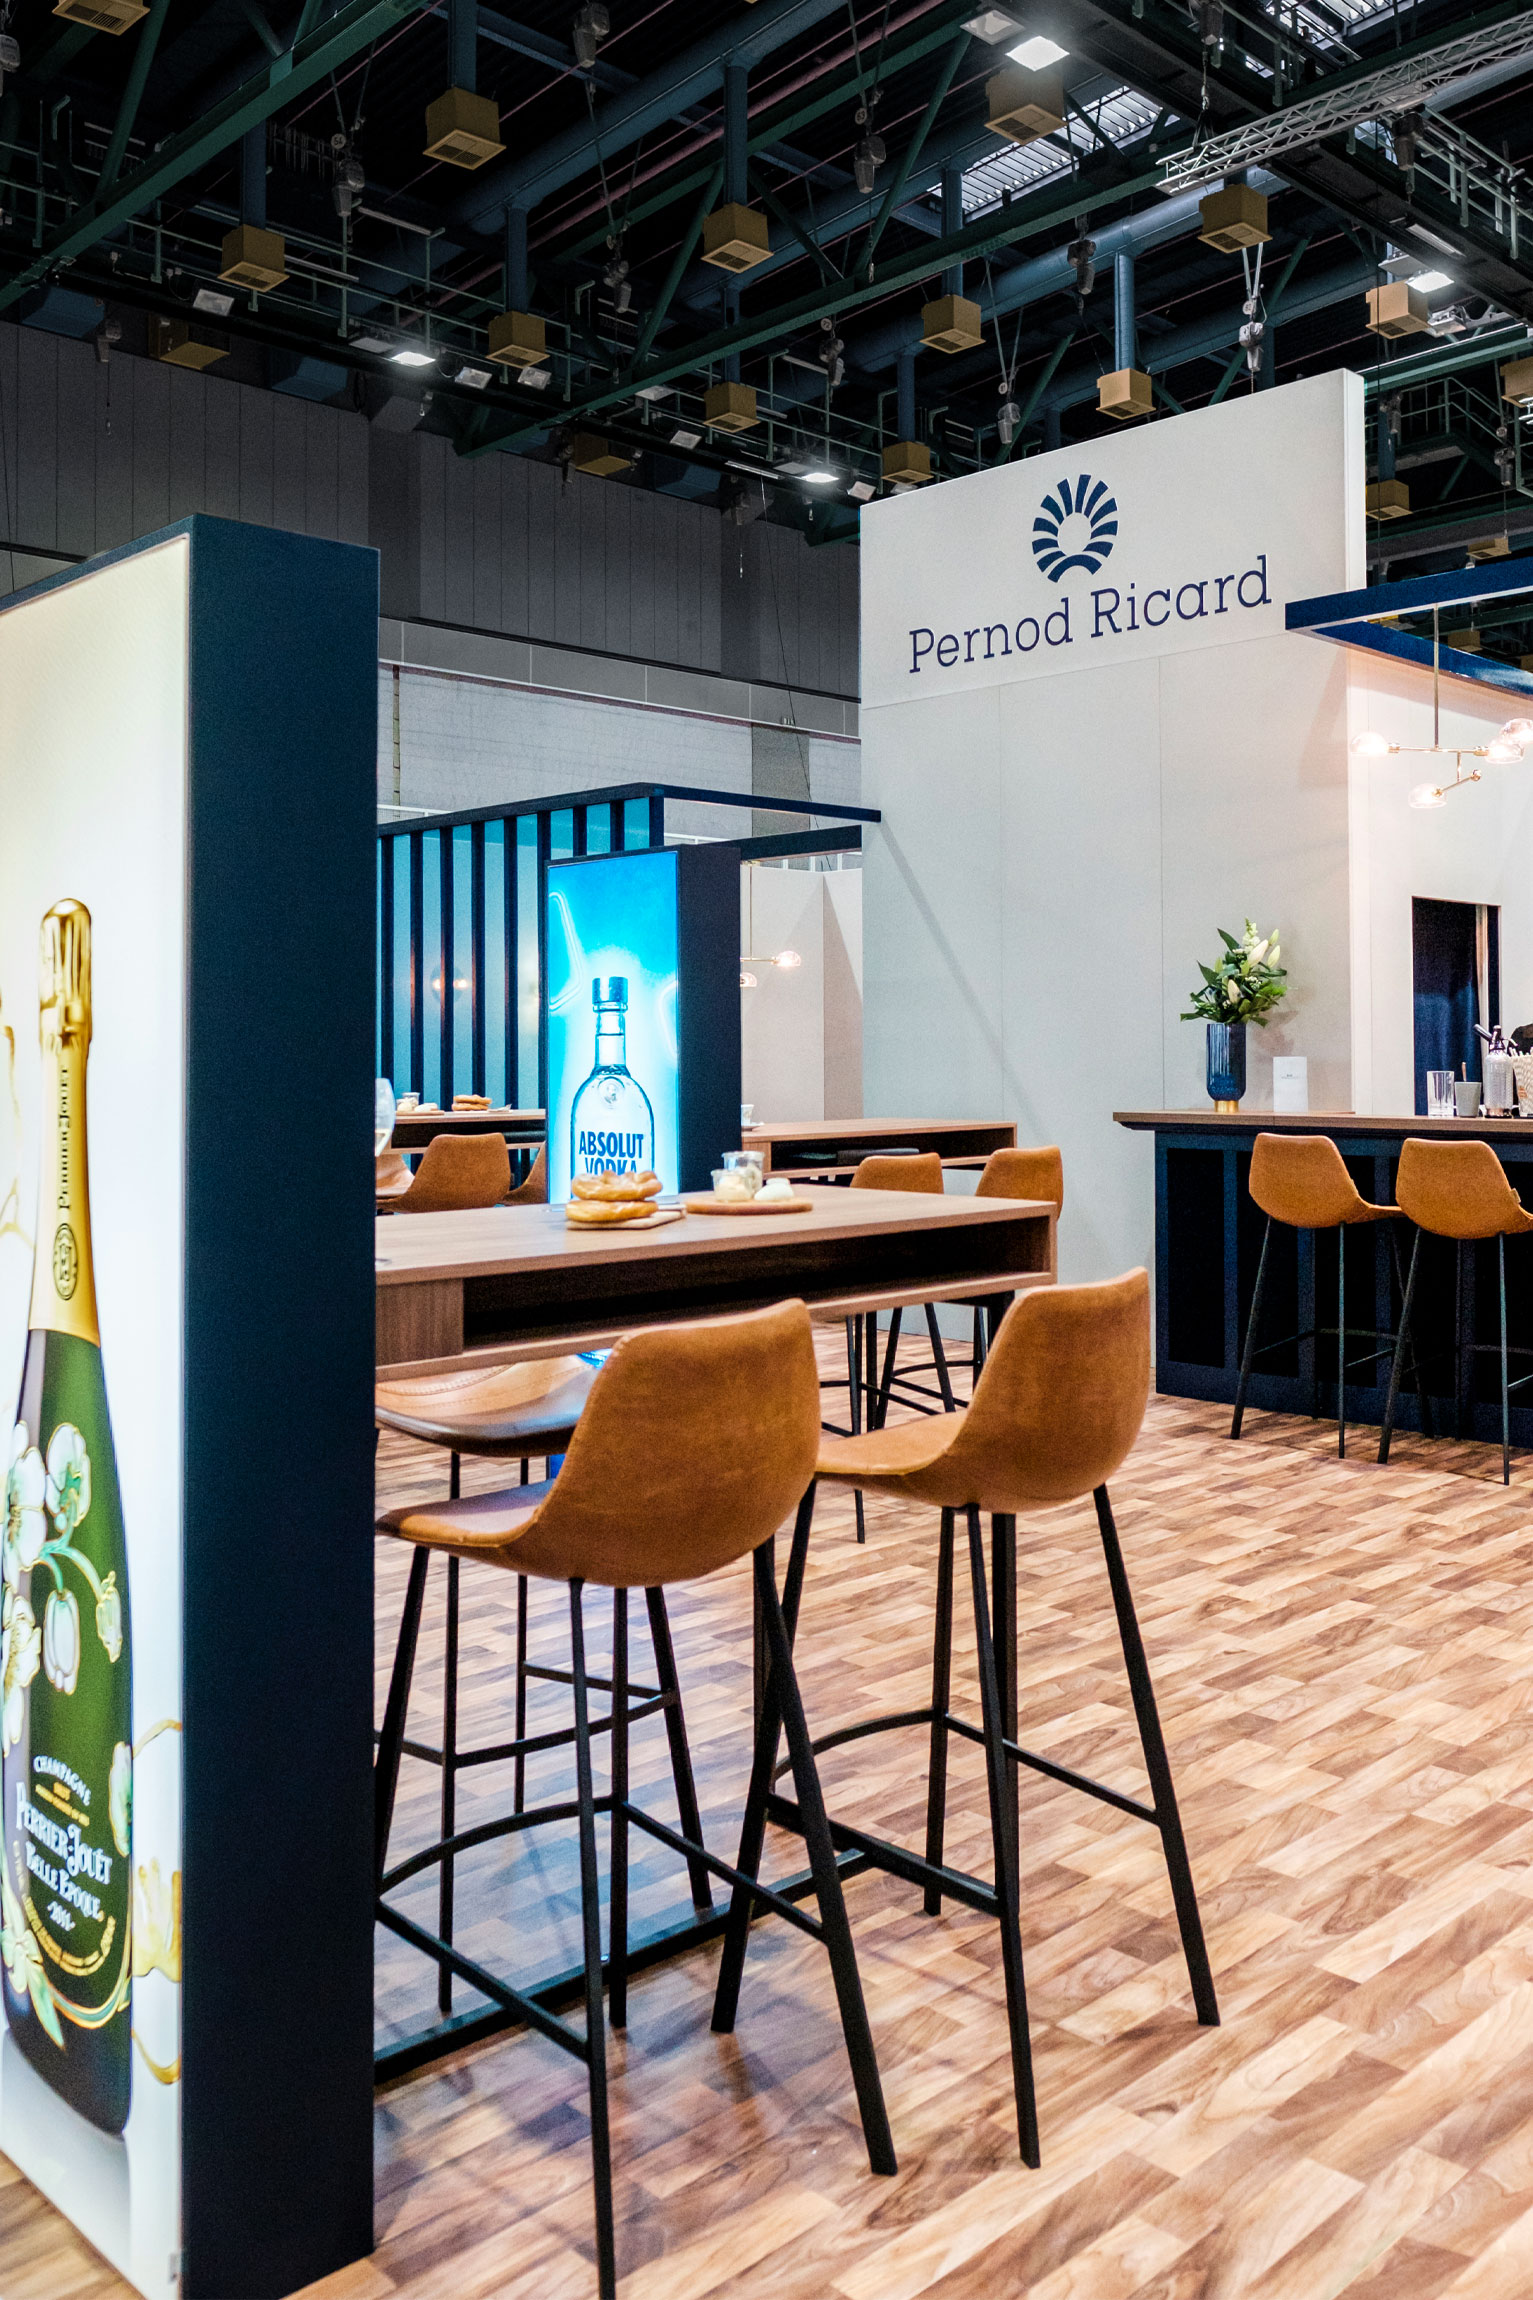 Pernod Ricard Messestand 2019, Design Stil Manipulation 2019, ProFachandel, Messestand Design, Messe Design, Messebau Köln